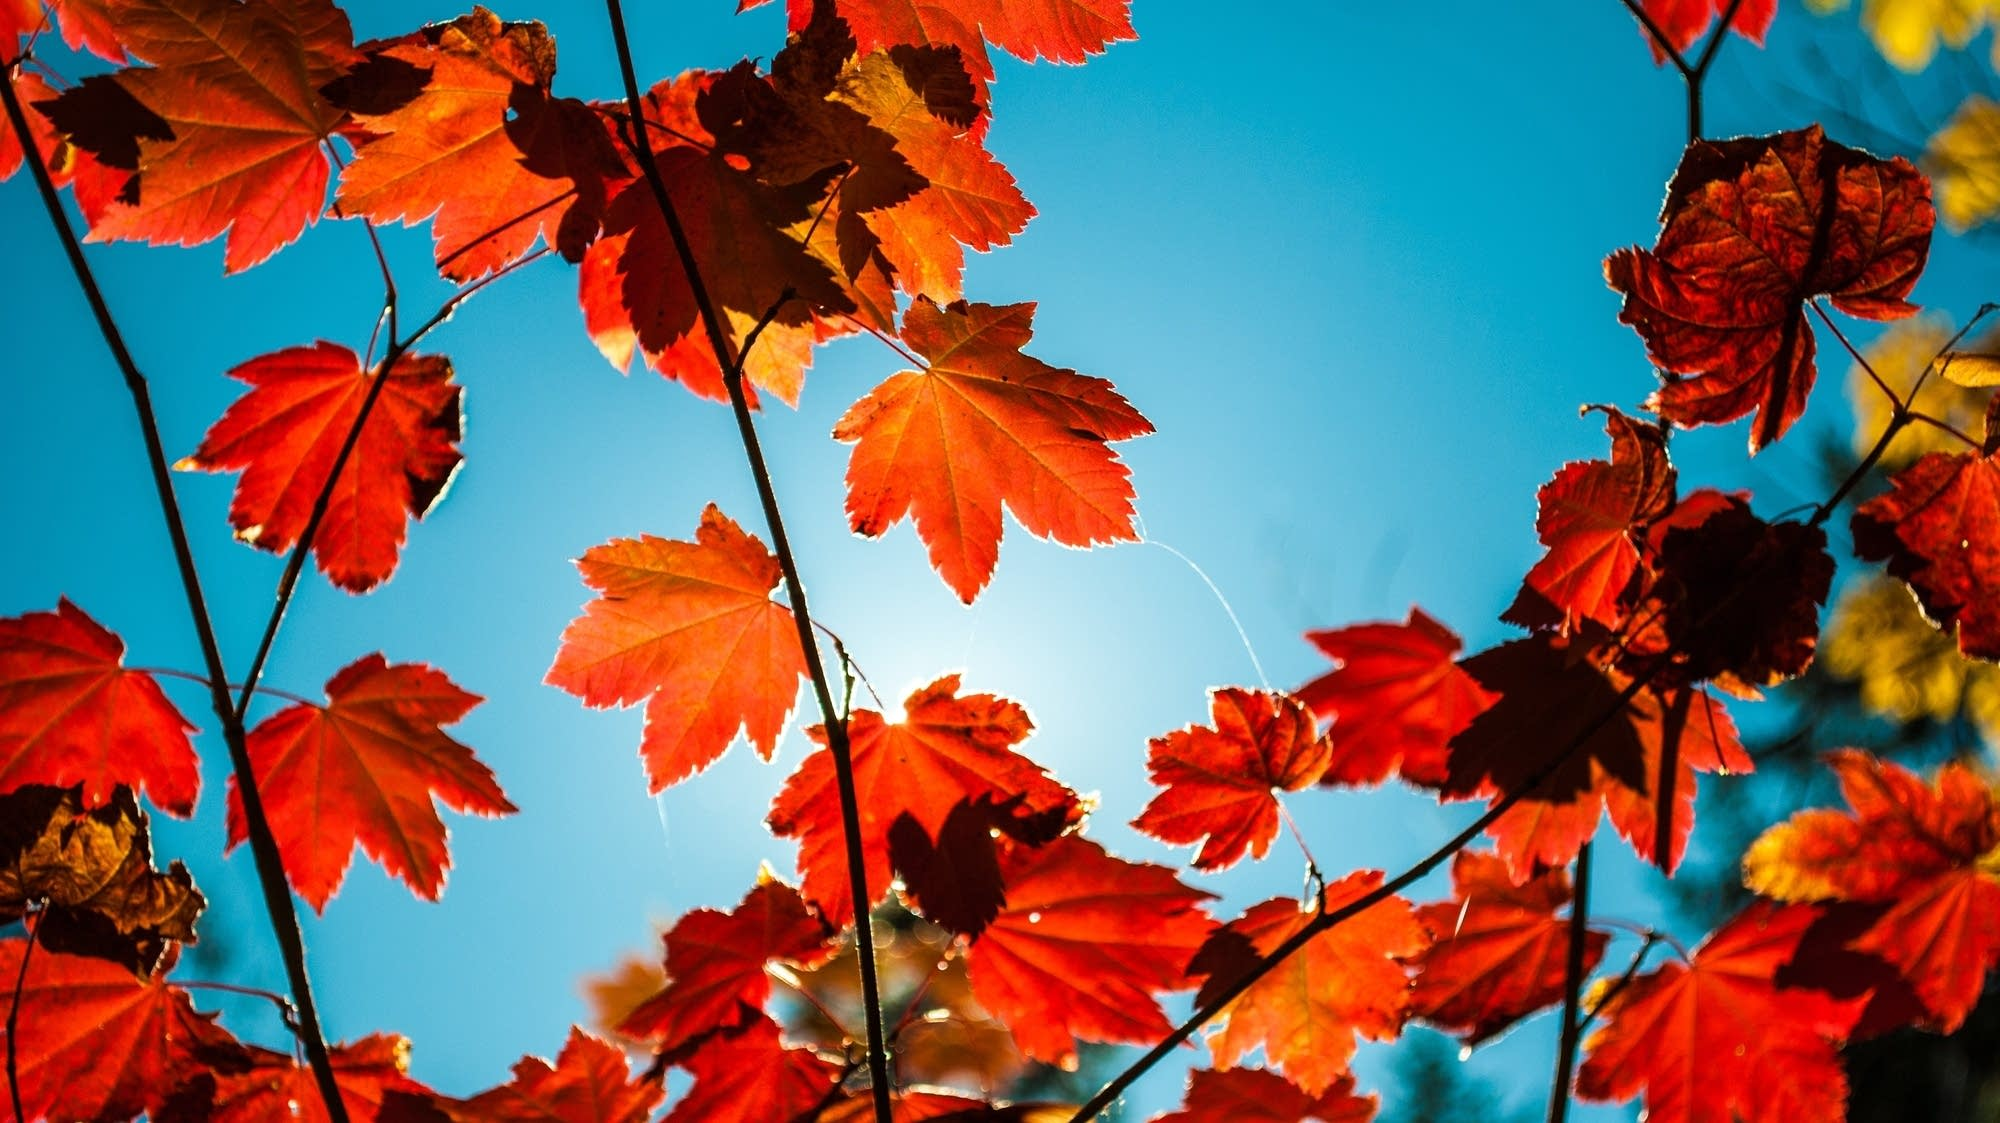 celebrate autumn with our specially curated classical music playlist